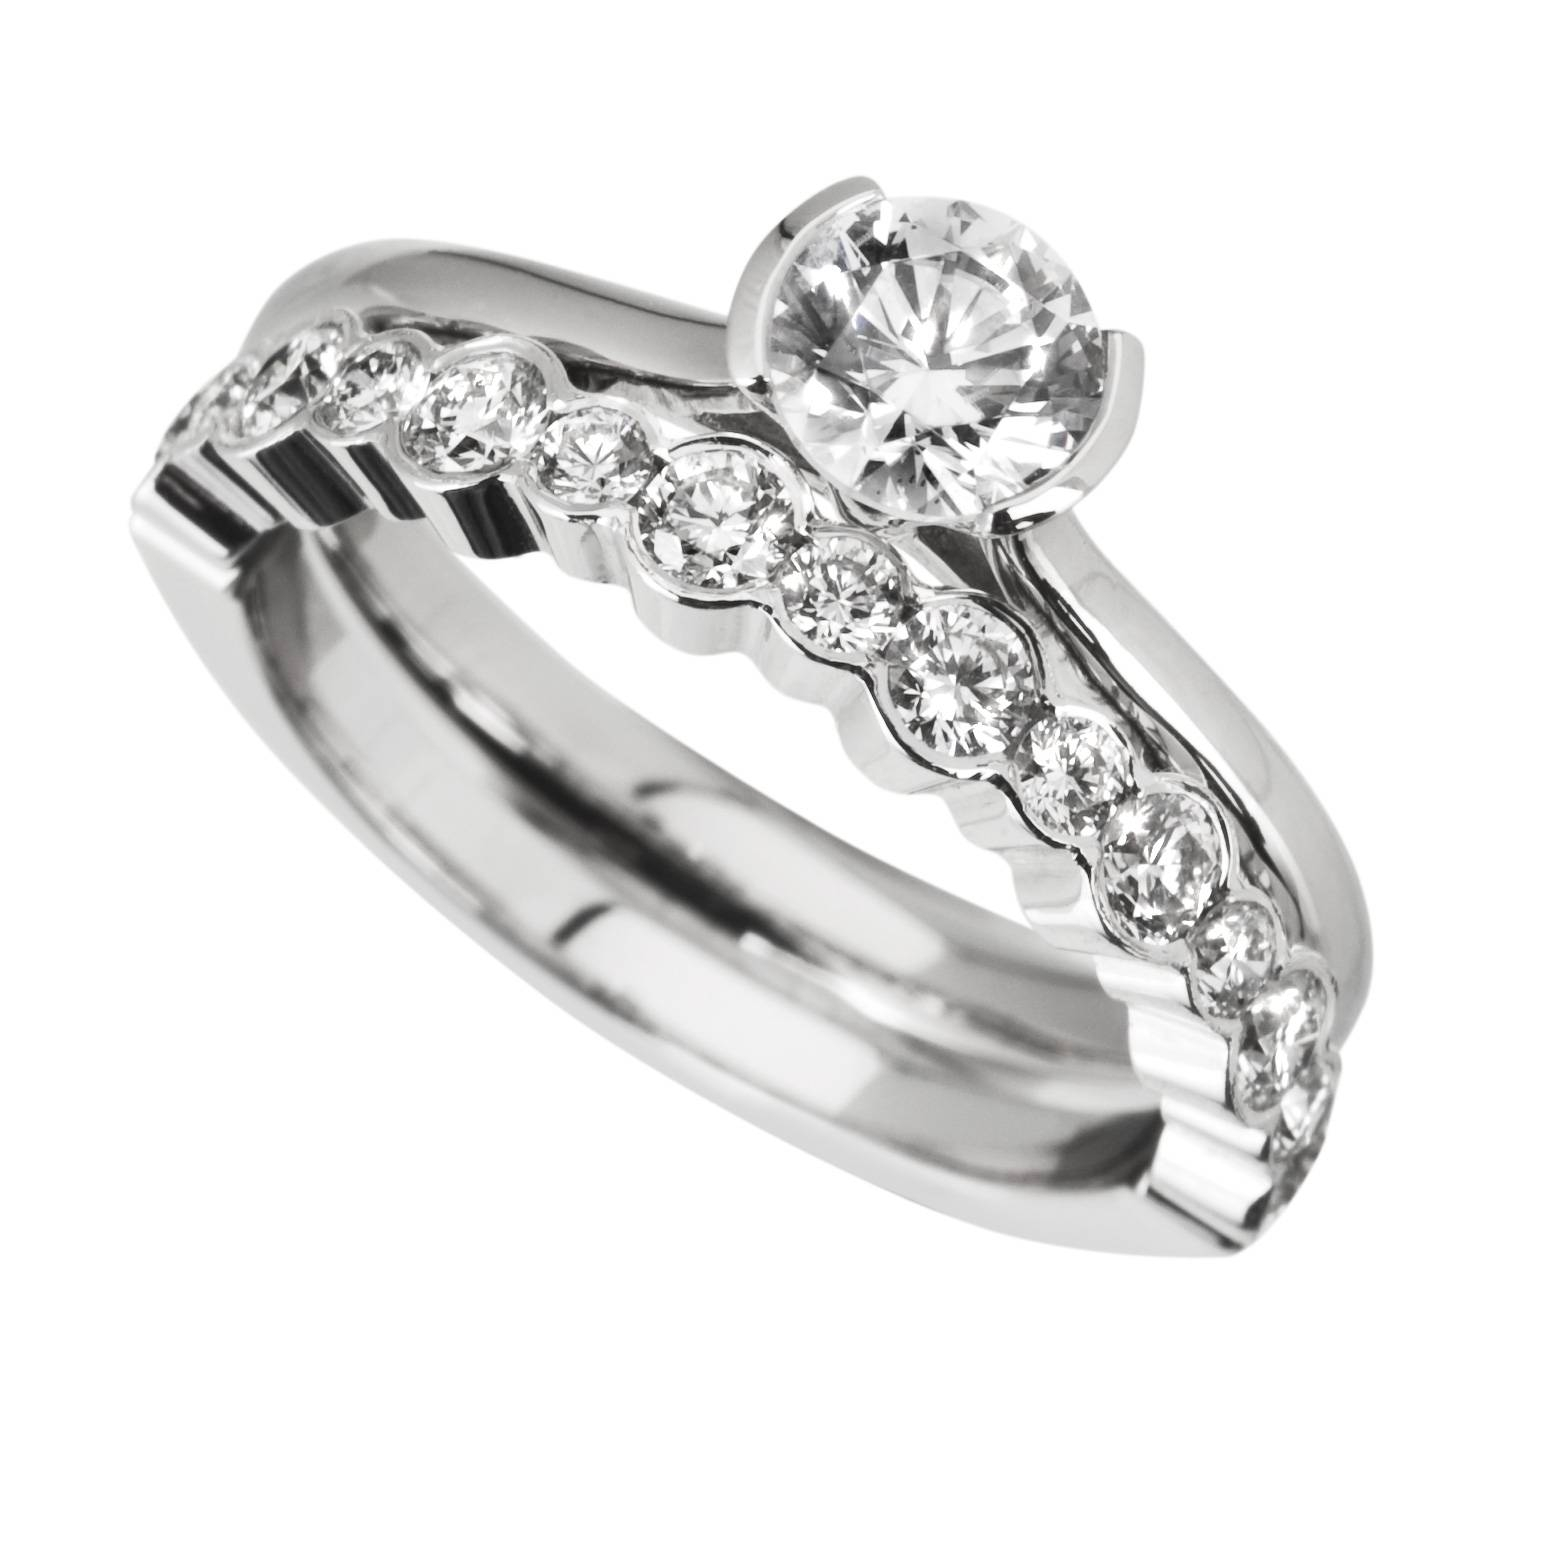 Engagement Rings : Wedding Rings Zales Wedding Rings Zales Wedding Pertaining To Mens Engagement And Wedding Rings Sets (View 6 of 15)